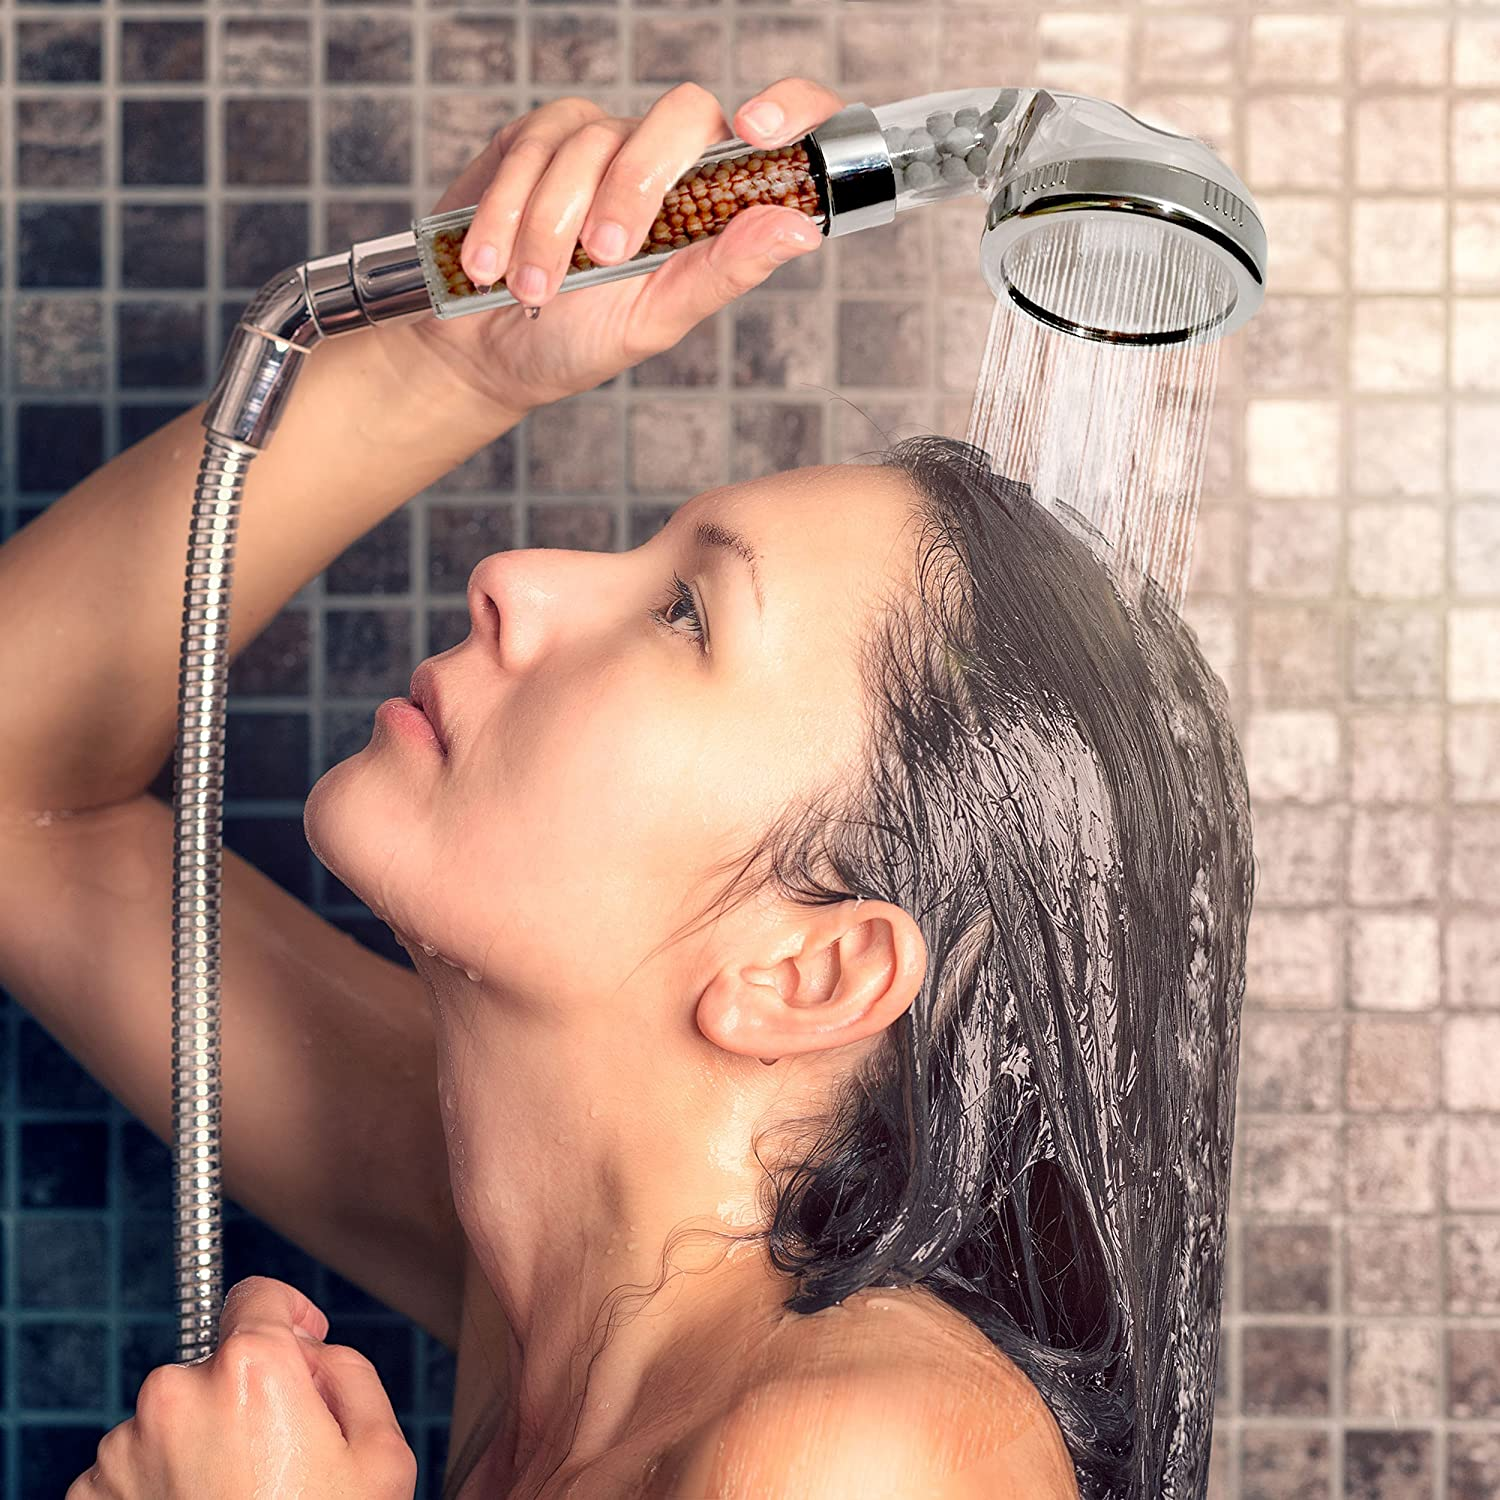 Handheld Filtered Shower Head Filtration with High Pressure - Combo Sprayer Purifies Hard Water Enhancing Dry Skin & Hair